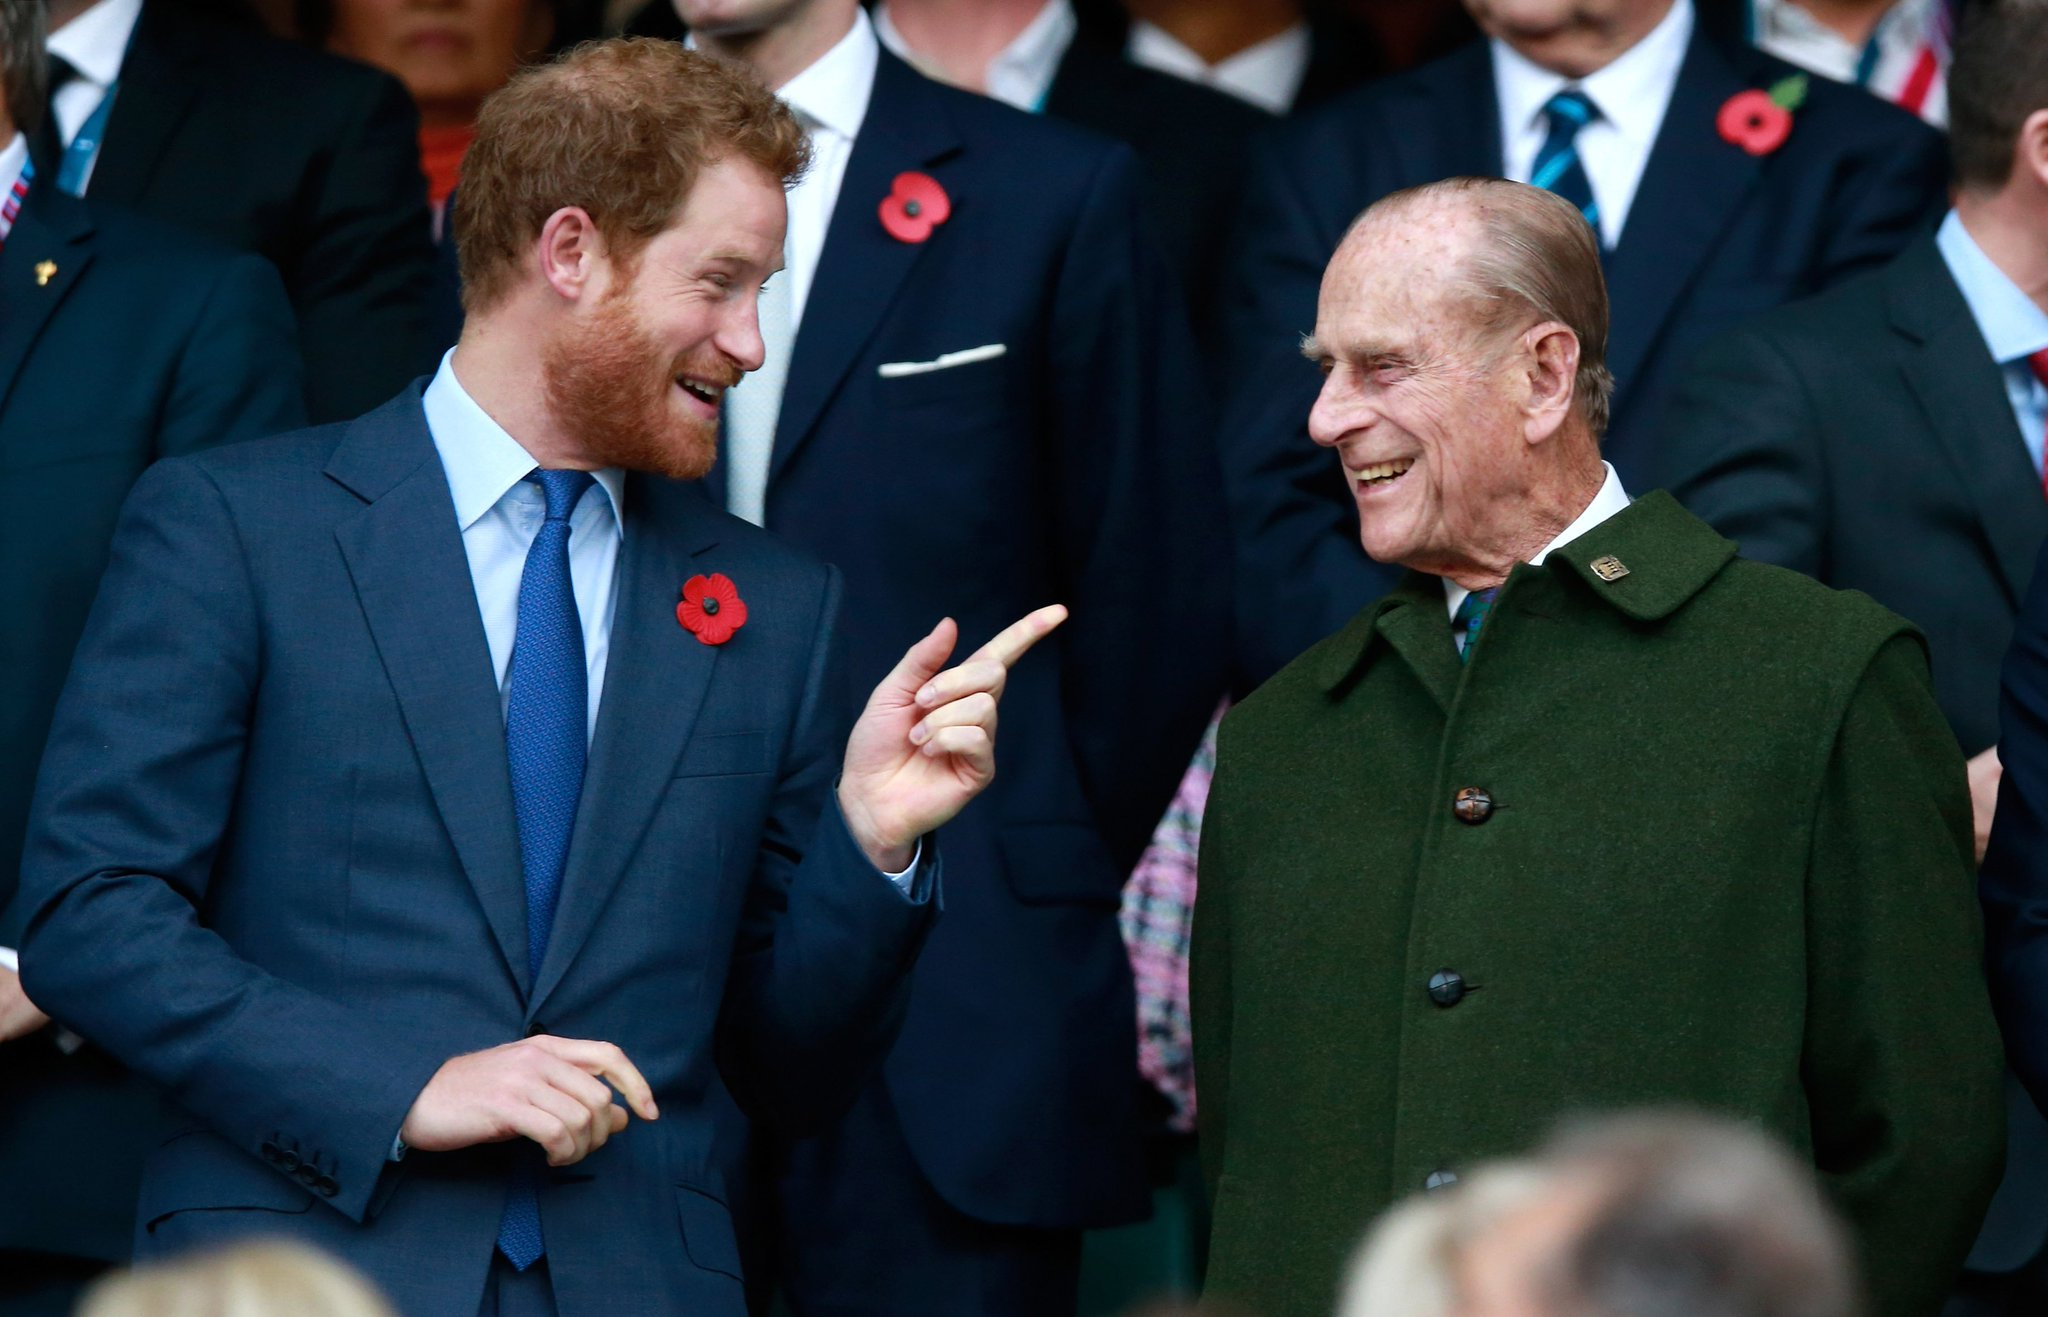 Happy 98th birthday to Prince Philip!